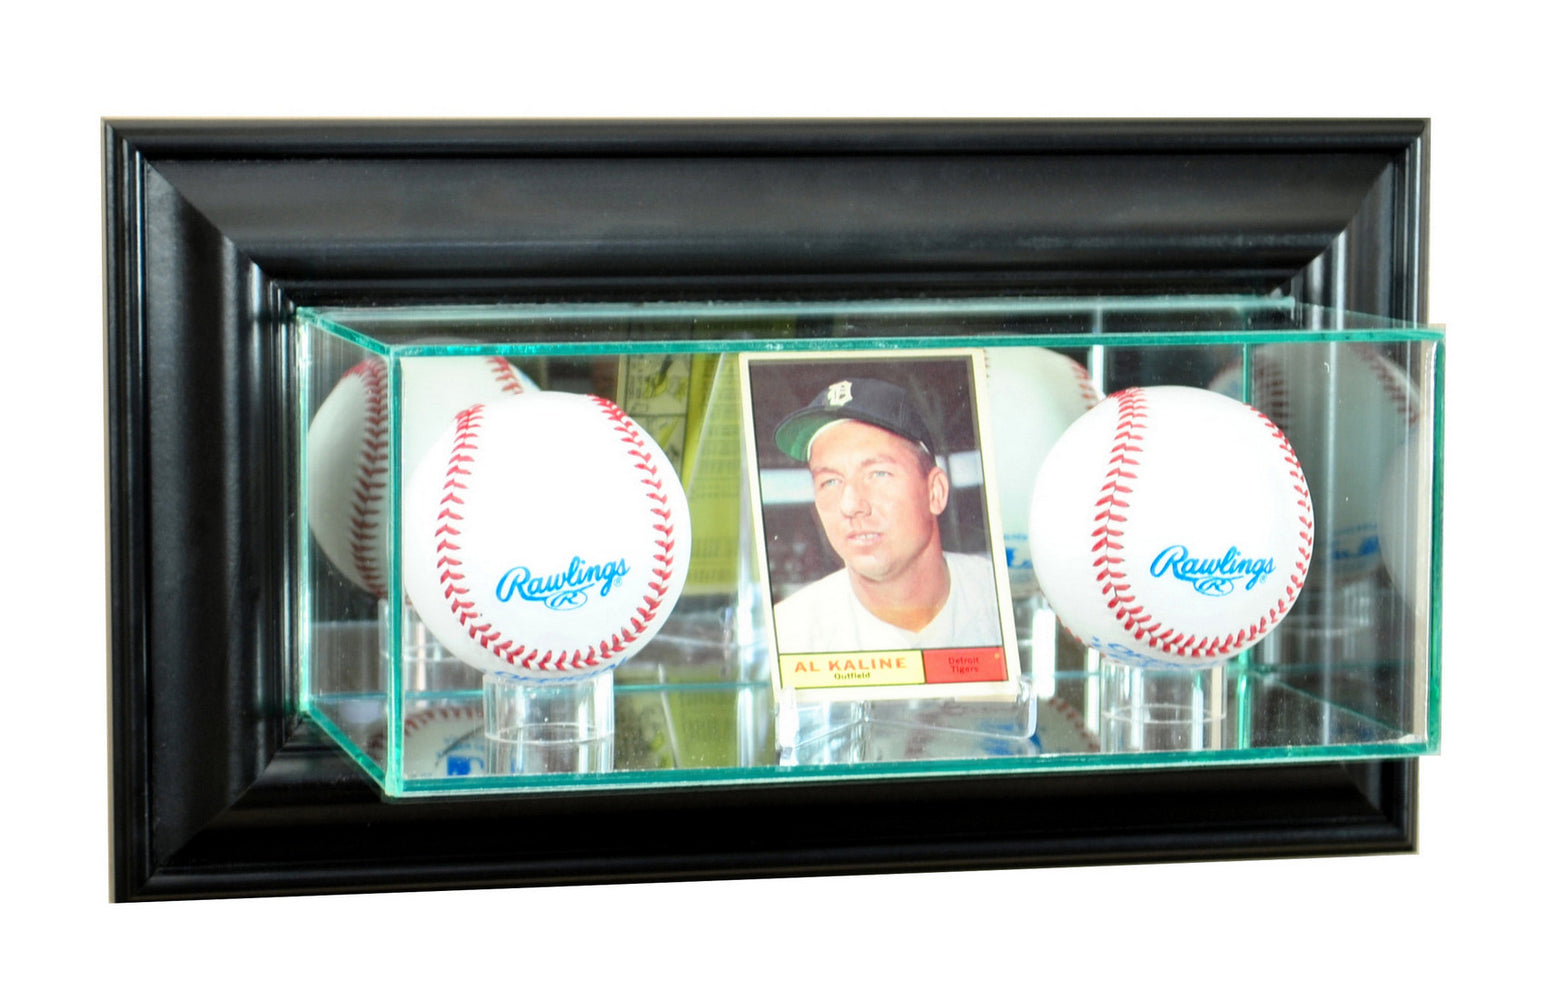 Wall Mounted Card and Double Baseball Display Case with Mirrors